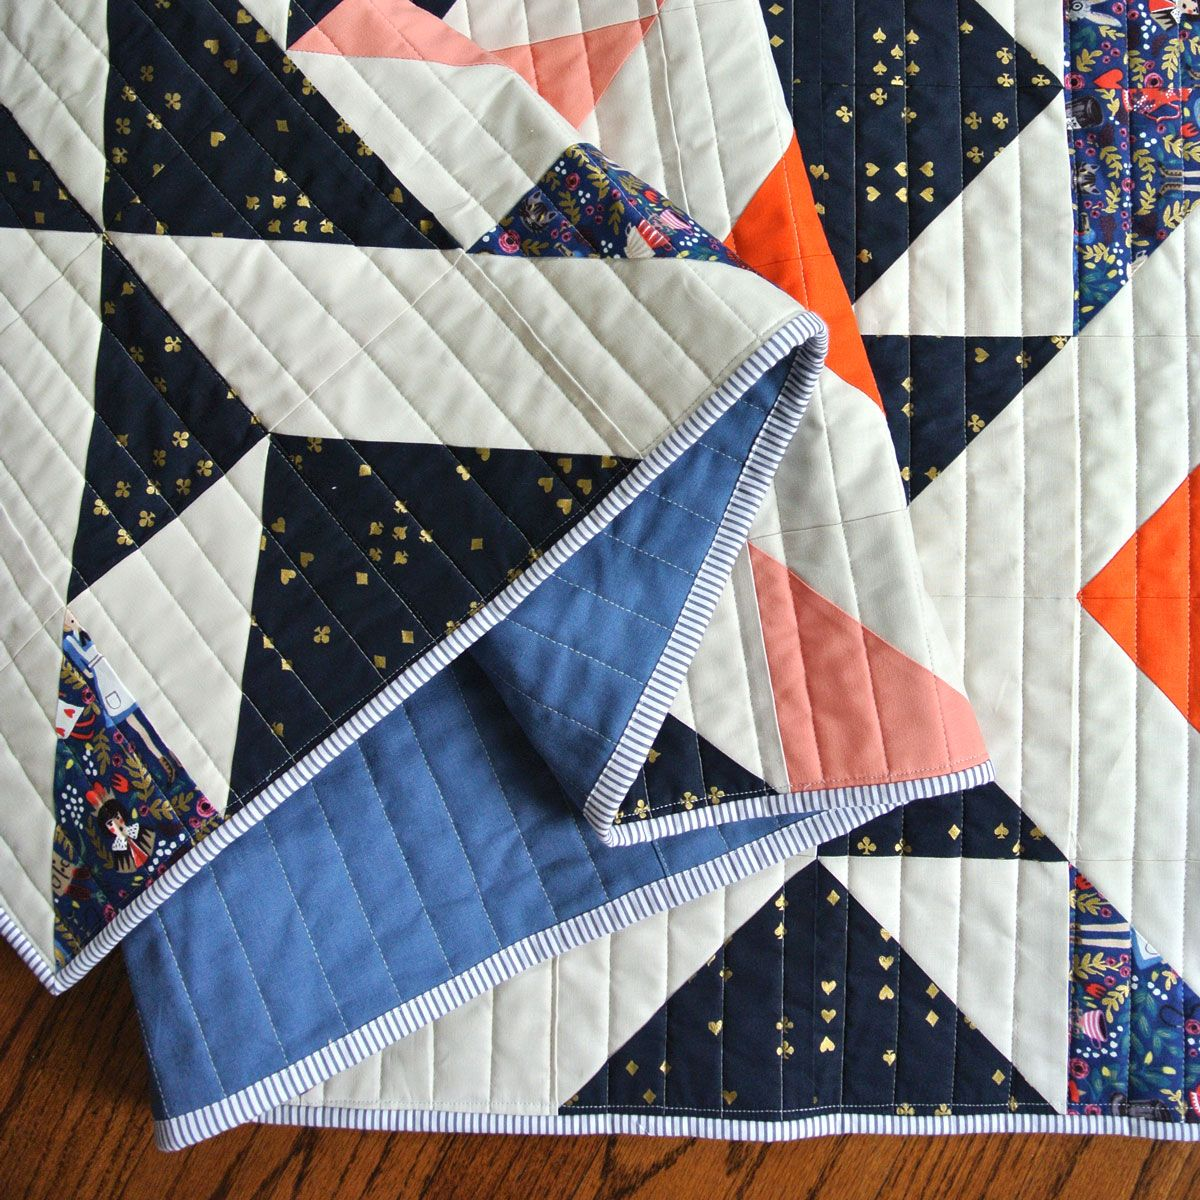 Nordic Triangles Quilt Pattern Download Suzy Quilts Triangle Quilt Triangle Quilt Pattern Scandinavian Quilts